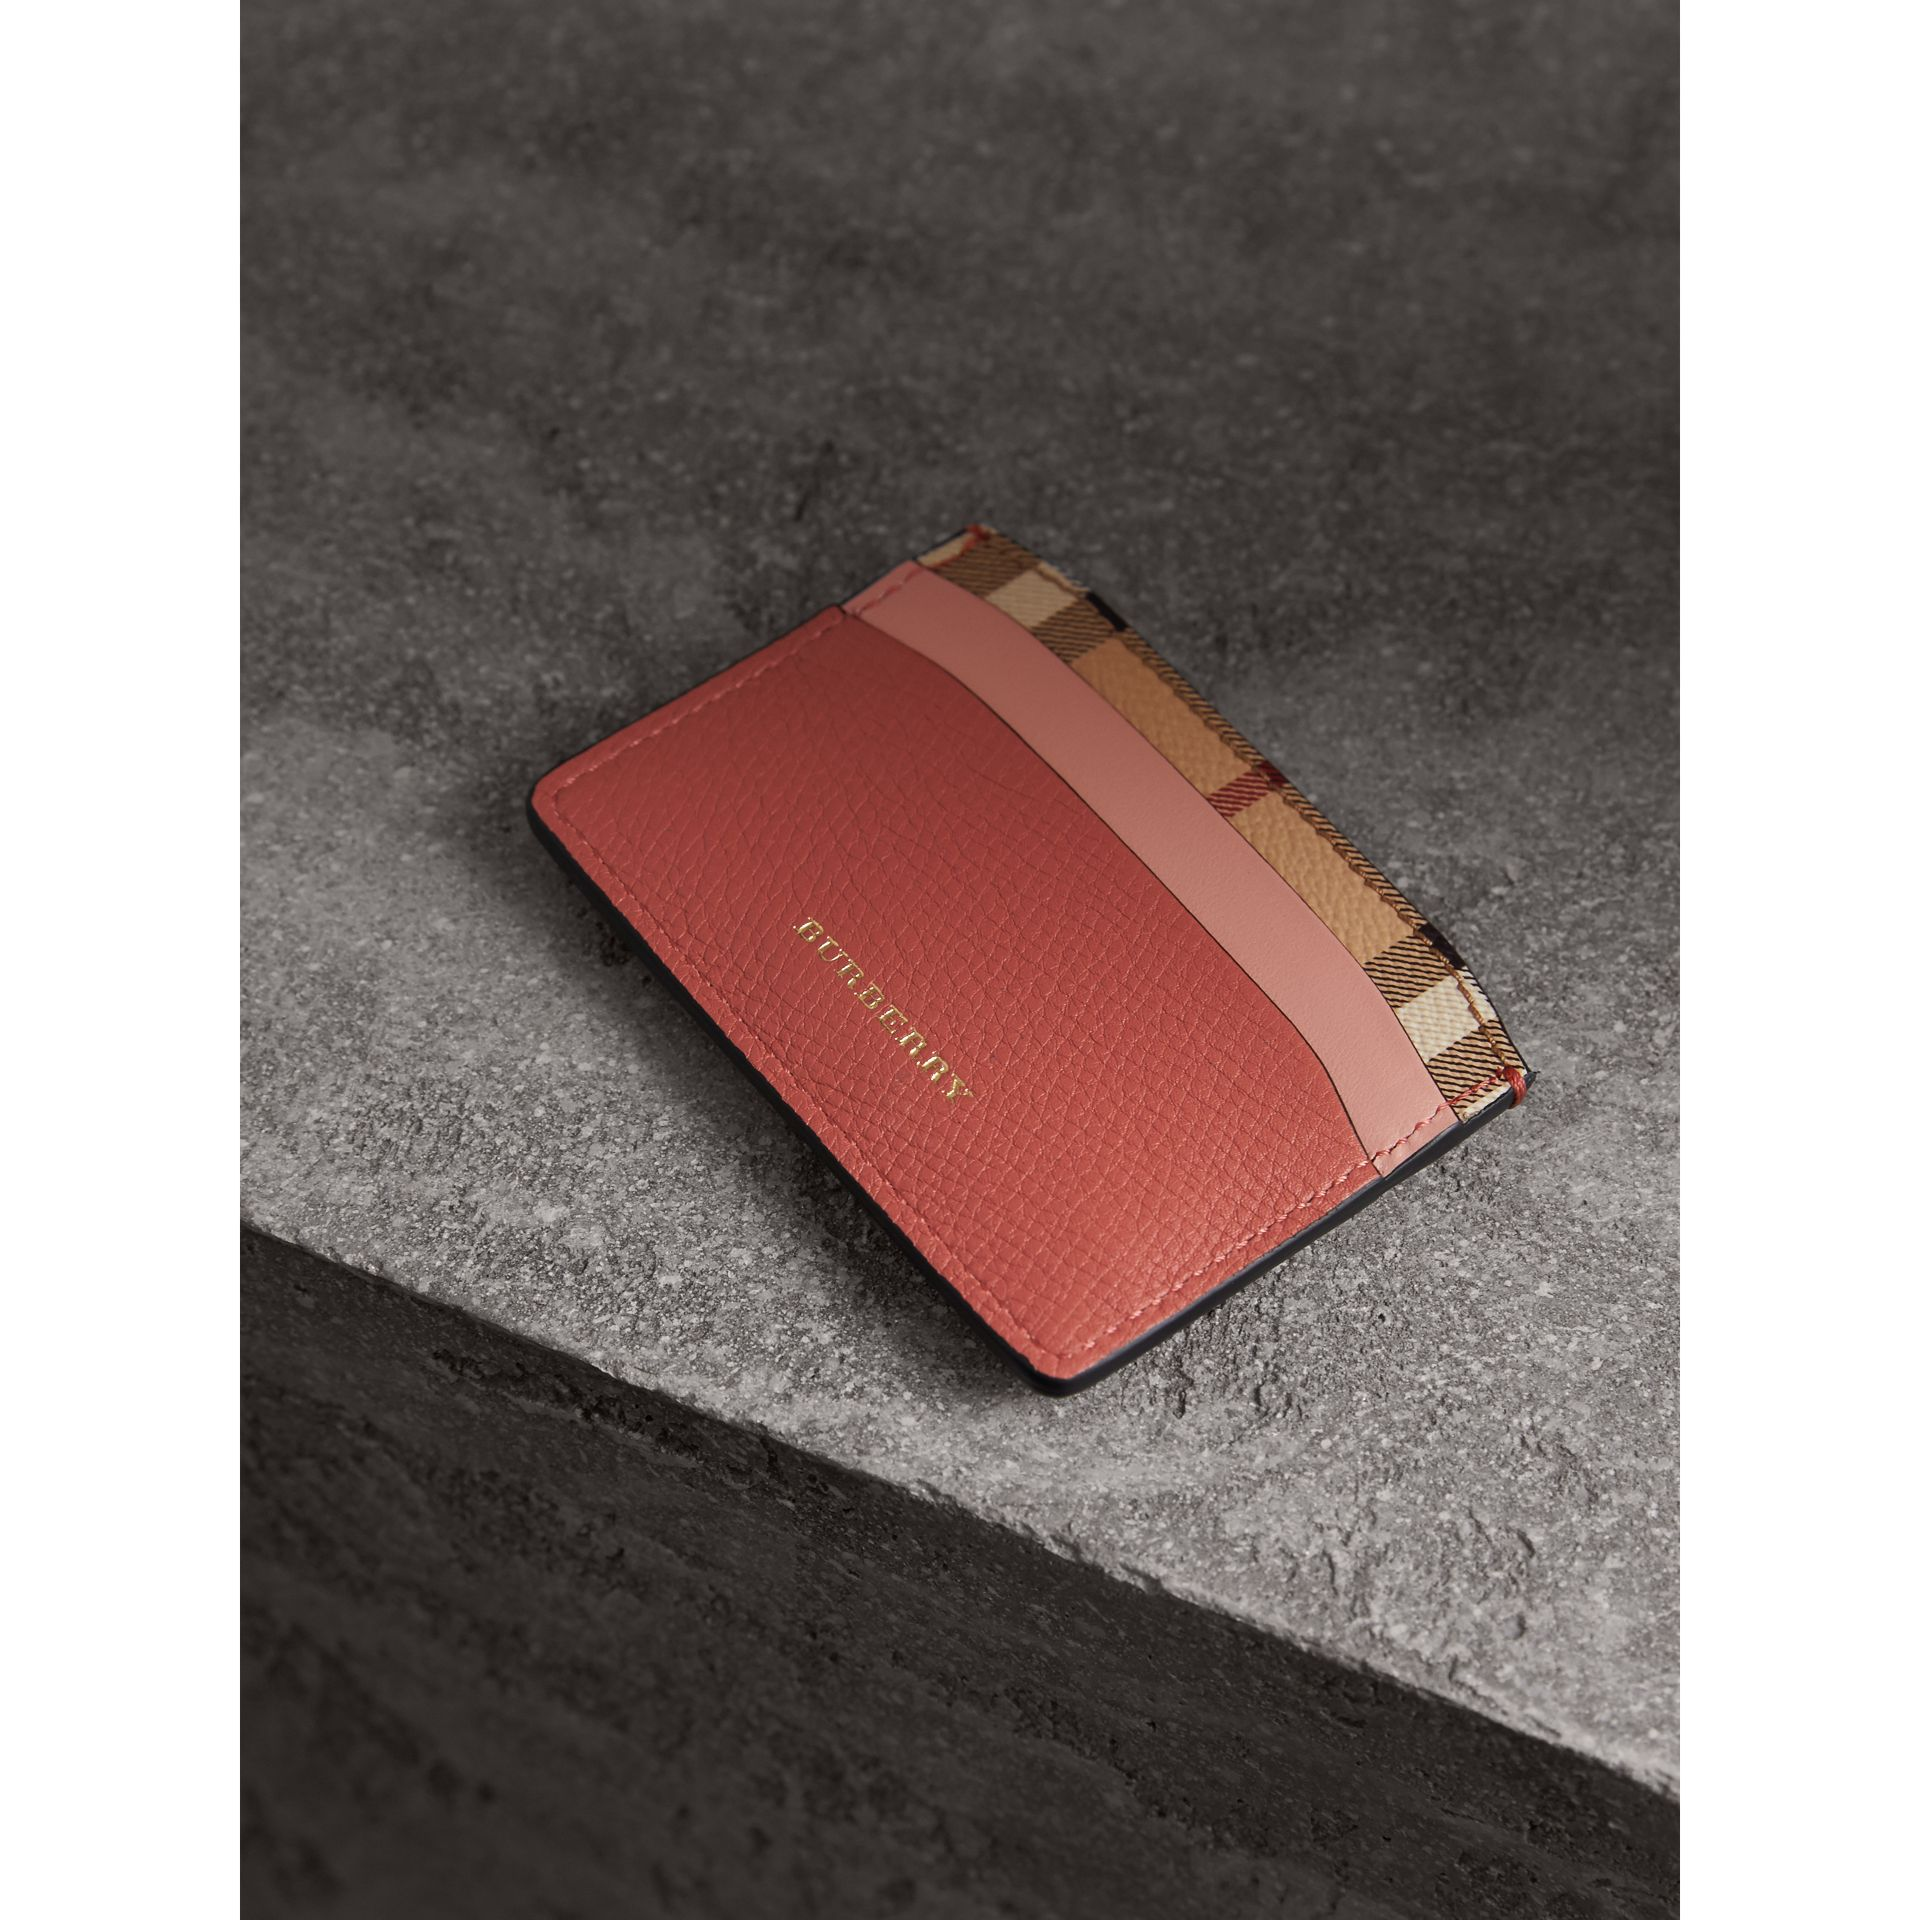 Beasts Motif Haymarket Check and Leather Card Case in Cinnamon Red - Women | Burberry Singapore - gallery image 3